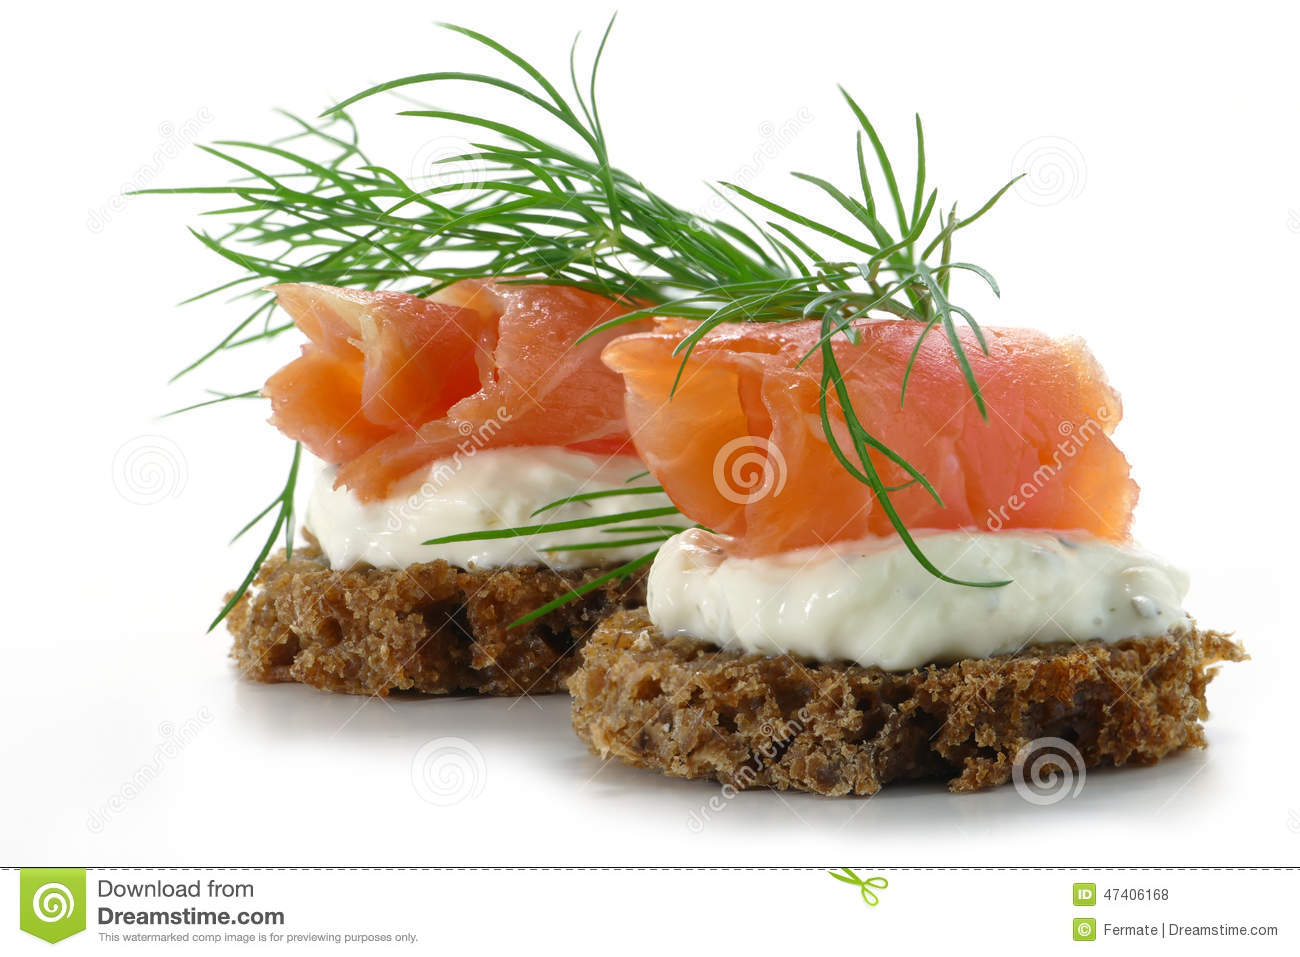 Two salmon canapes with fresh dill garnish isolated on for Canape garnishes